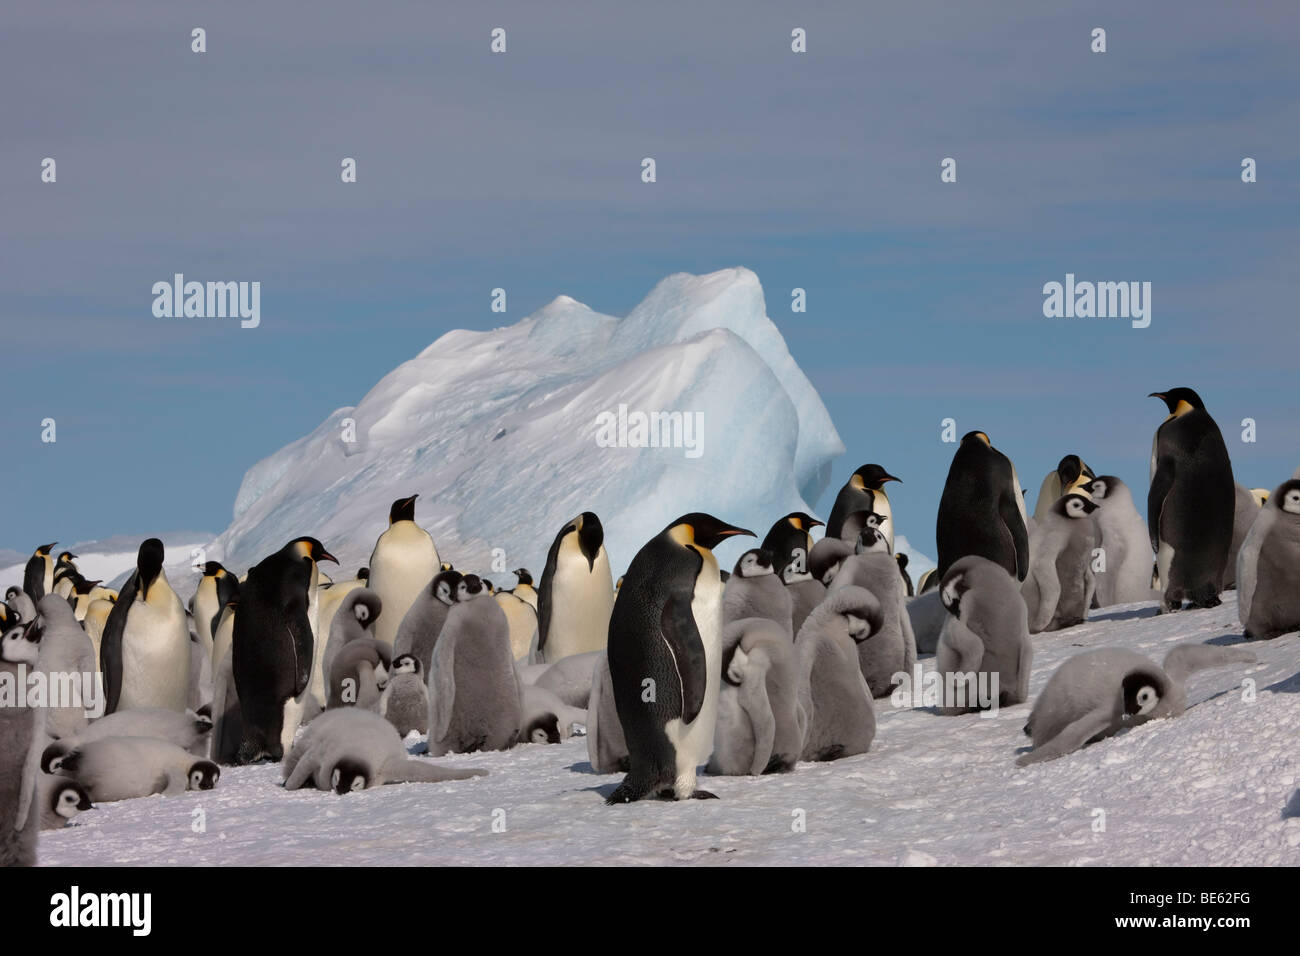 Breeding colony of Emperor Penguins at Snow Hill Island in Antarctica - Stock Image